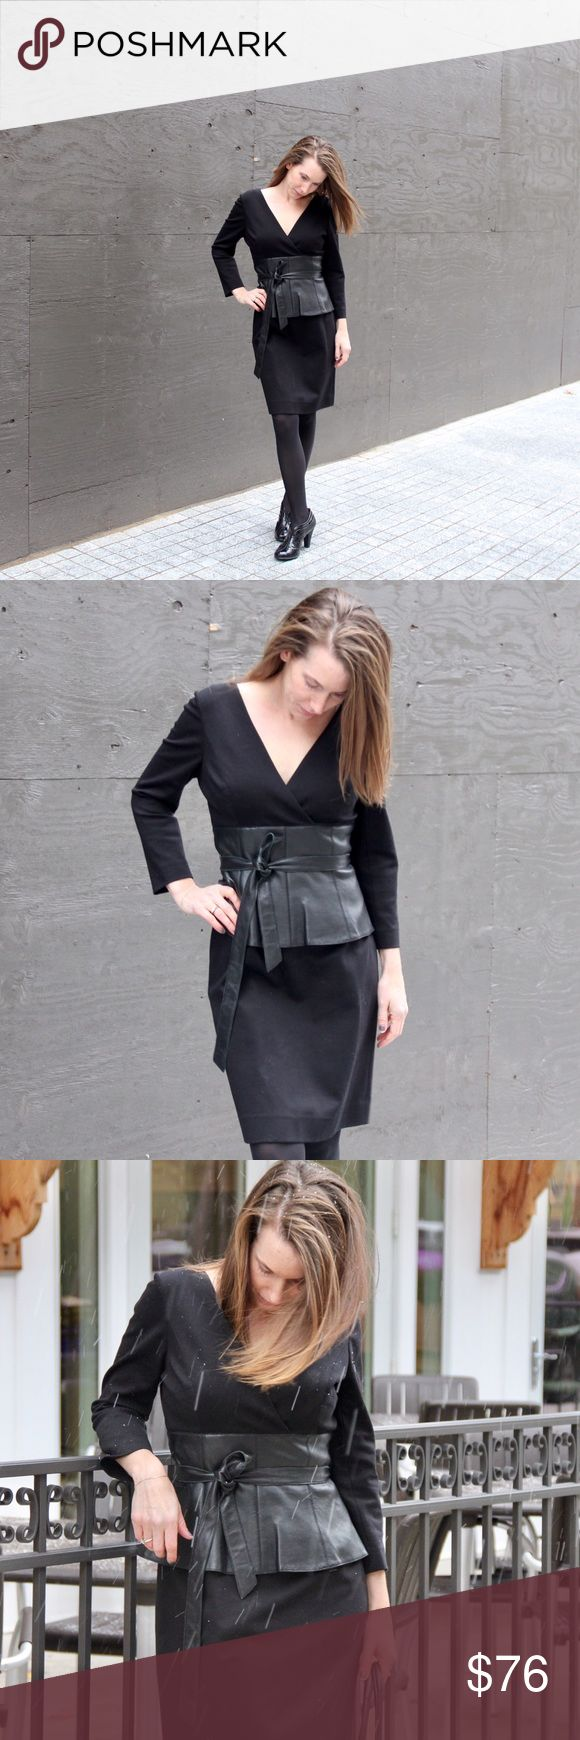 Teri Jon dress Teri Jon dress with 3/4 sleeves. The leather trim around the waist makes this dress really special and luxurious. It's the prefect winter dress. This is a size 10, model is size 4 with the dress cinched at the waist to show appropriate fit. Teri Jon Dresses